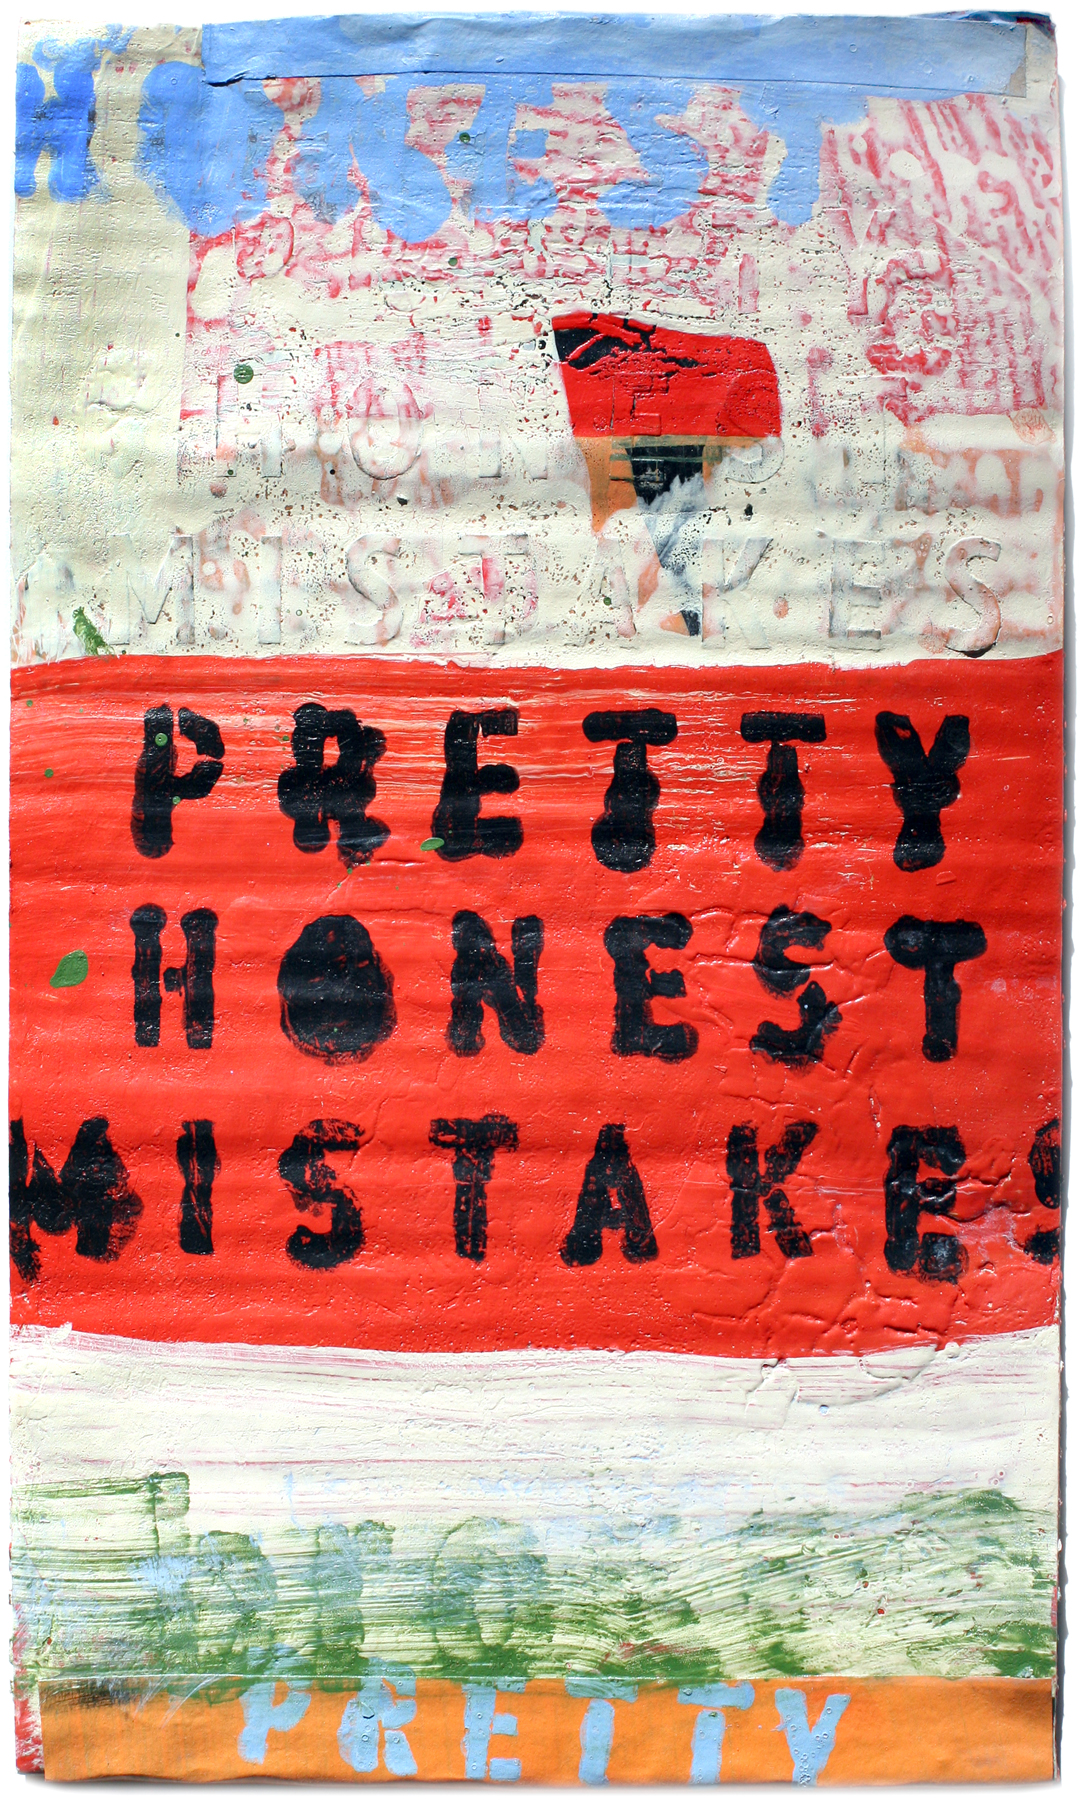 Pretty Honest Mistake 03